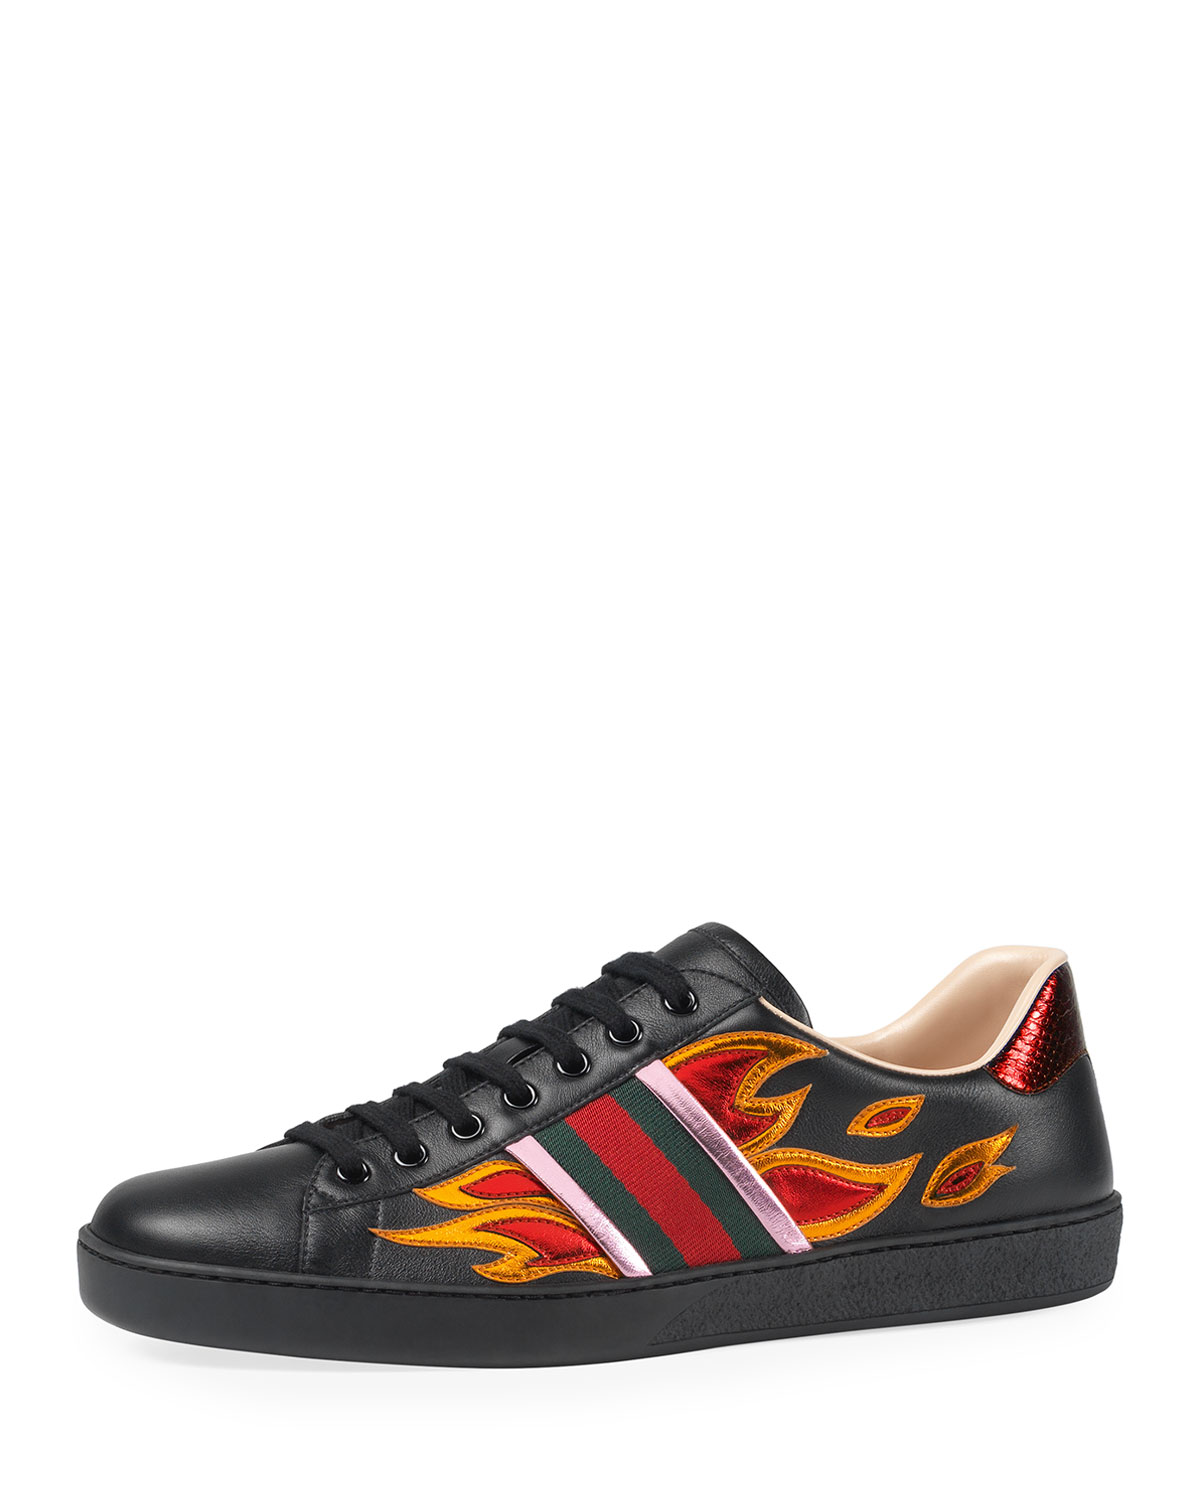 6058770b579 Gucci New Ace Flames Leather Low-Top Sneaker